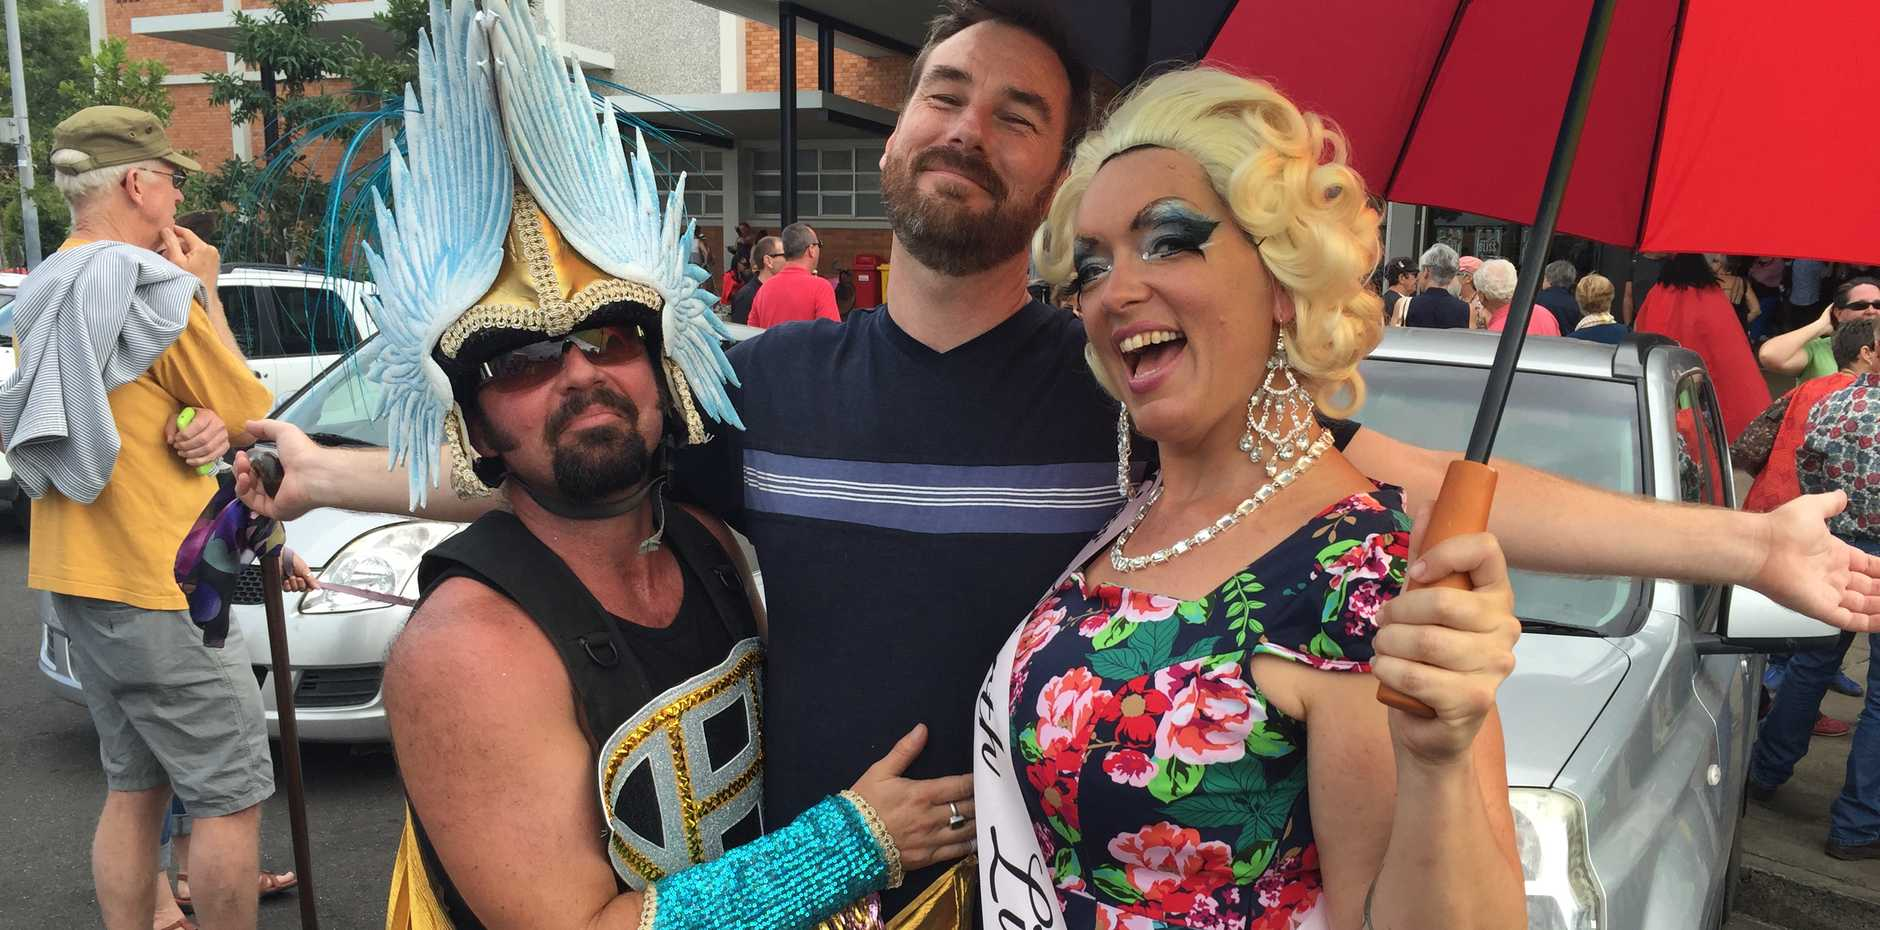 COMMUNITY: The local LGTBI community's event has gathered visitors from more than ten countries.